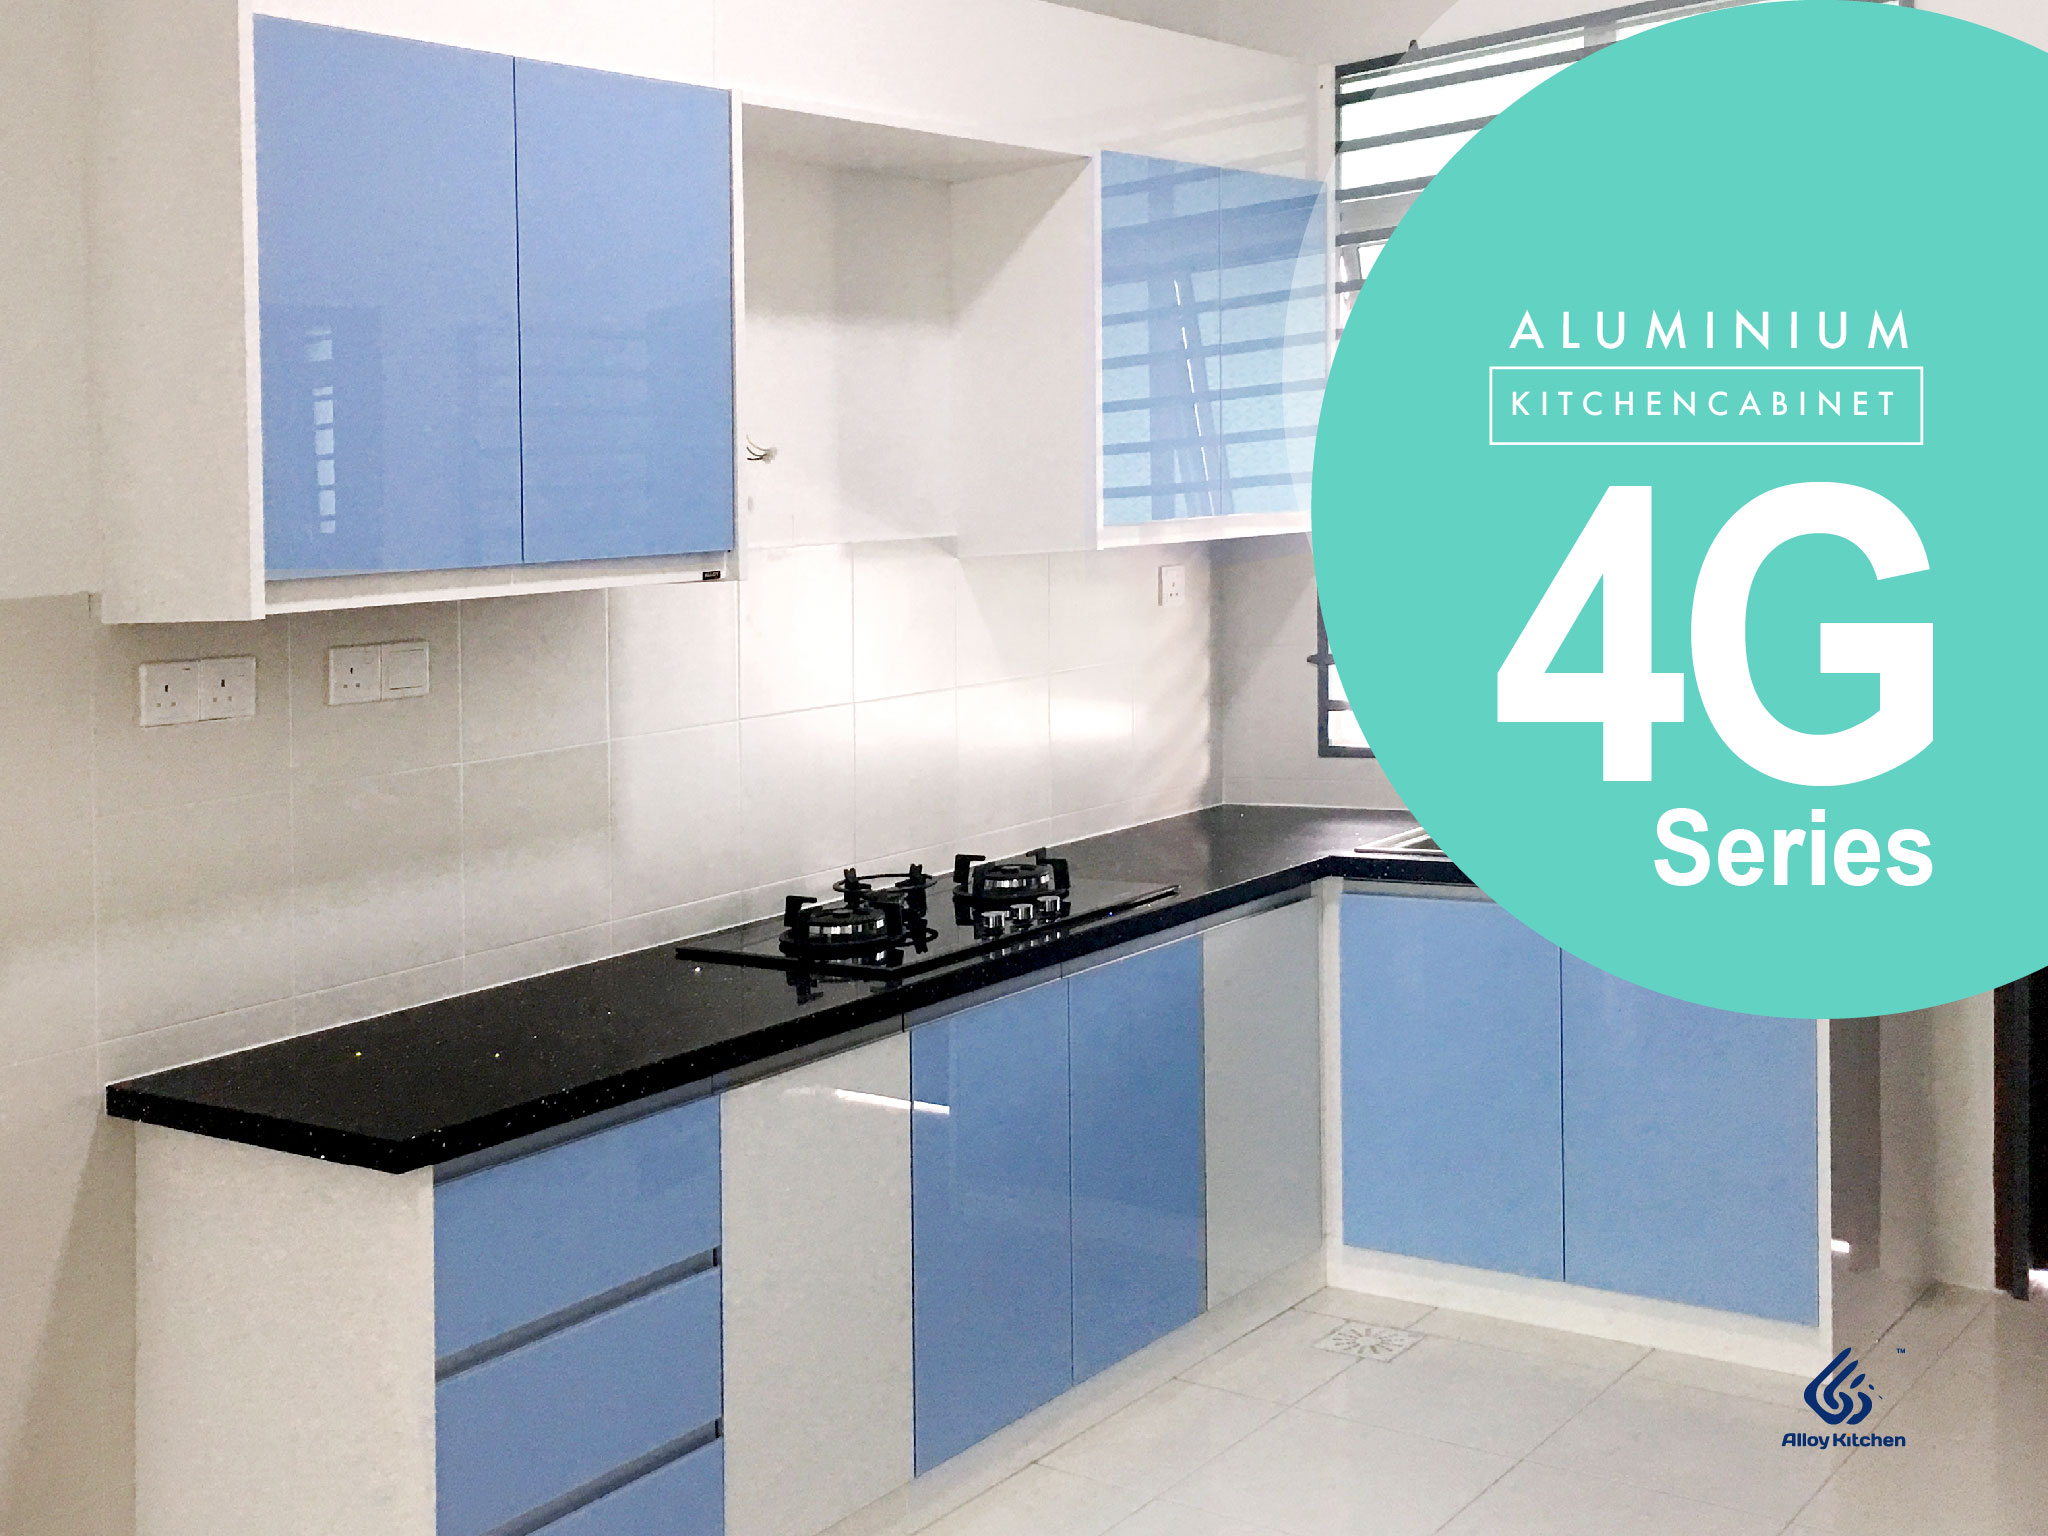 Kitchen Cabinet . 4G Series